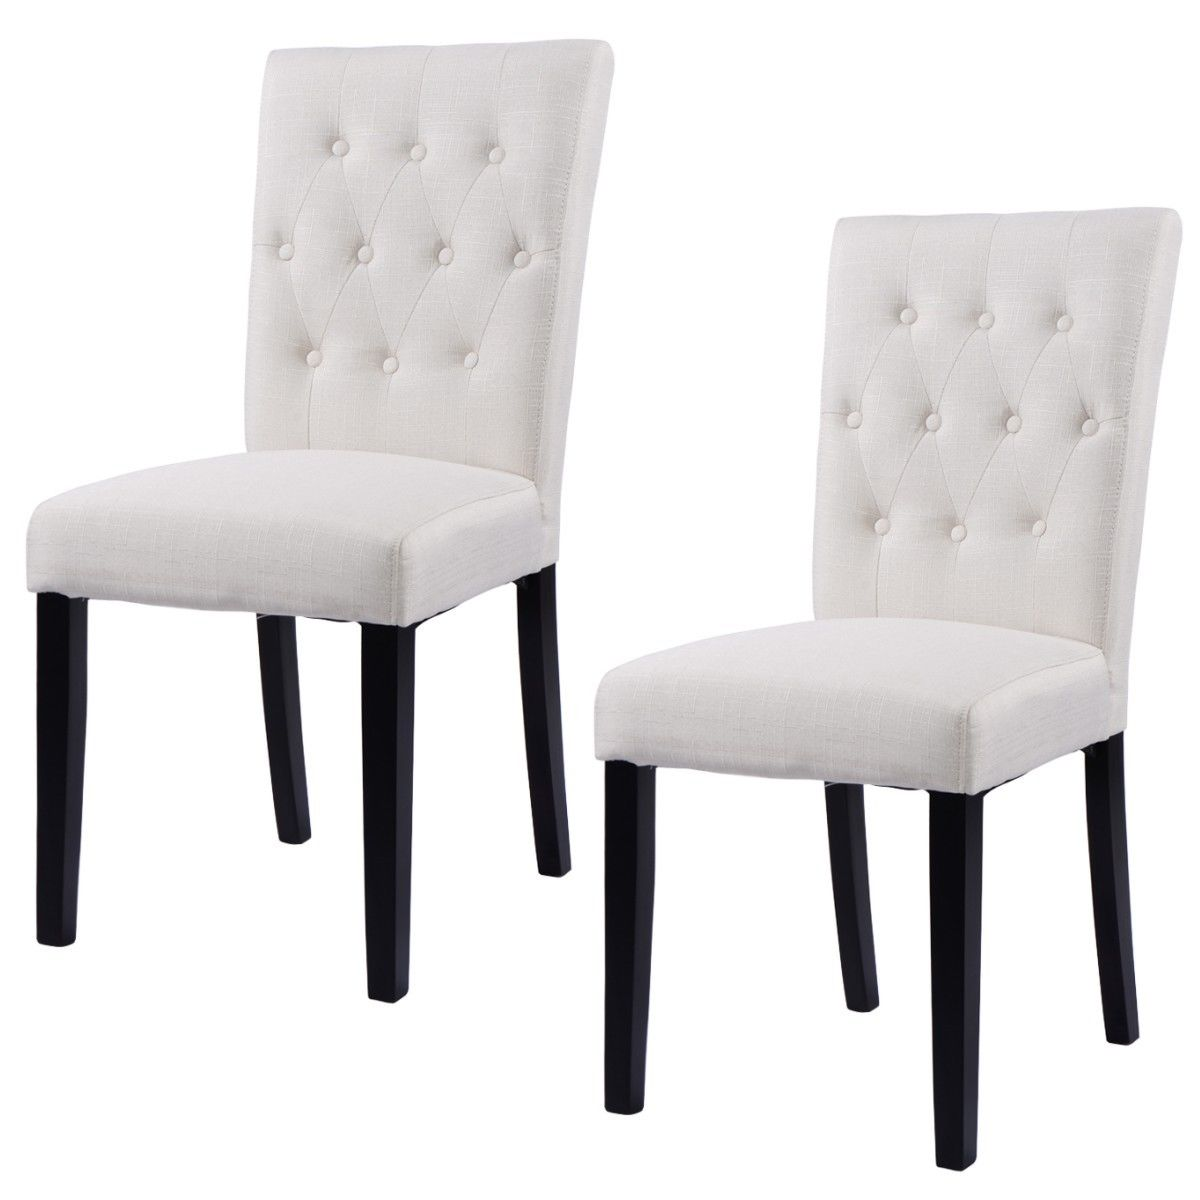 Groovy Giantex Set Of 2Pcs Fabric Dining Chair Armless Chair Modern Gmtry Best Dining Table And Chair Ideas Images Gmtryco